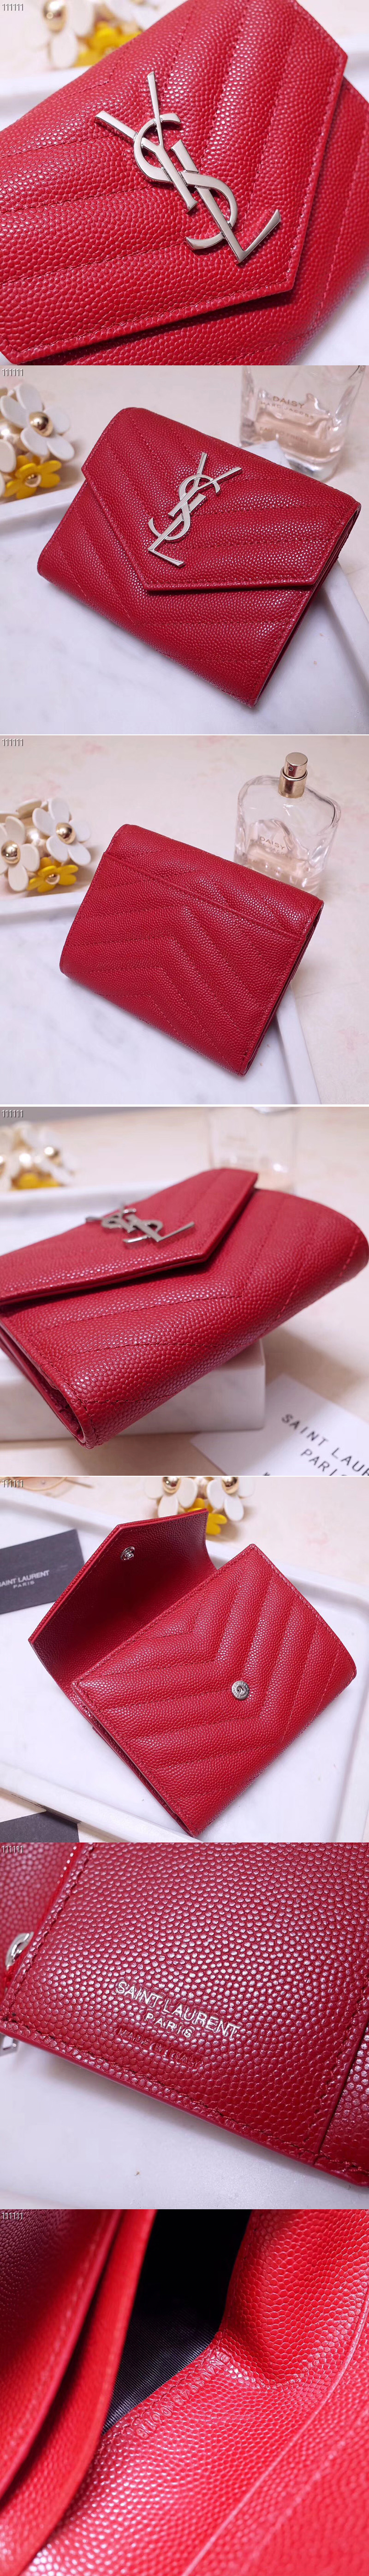 Replica Saint Laurent YSL 403943 Monogram Compact Tri Fold Wallet In Red Grain De Poudre Embossed Leather Silver YSL